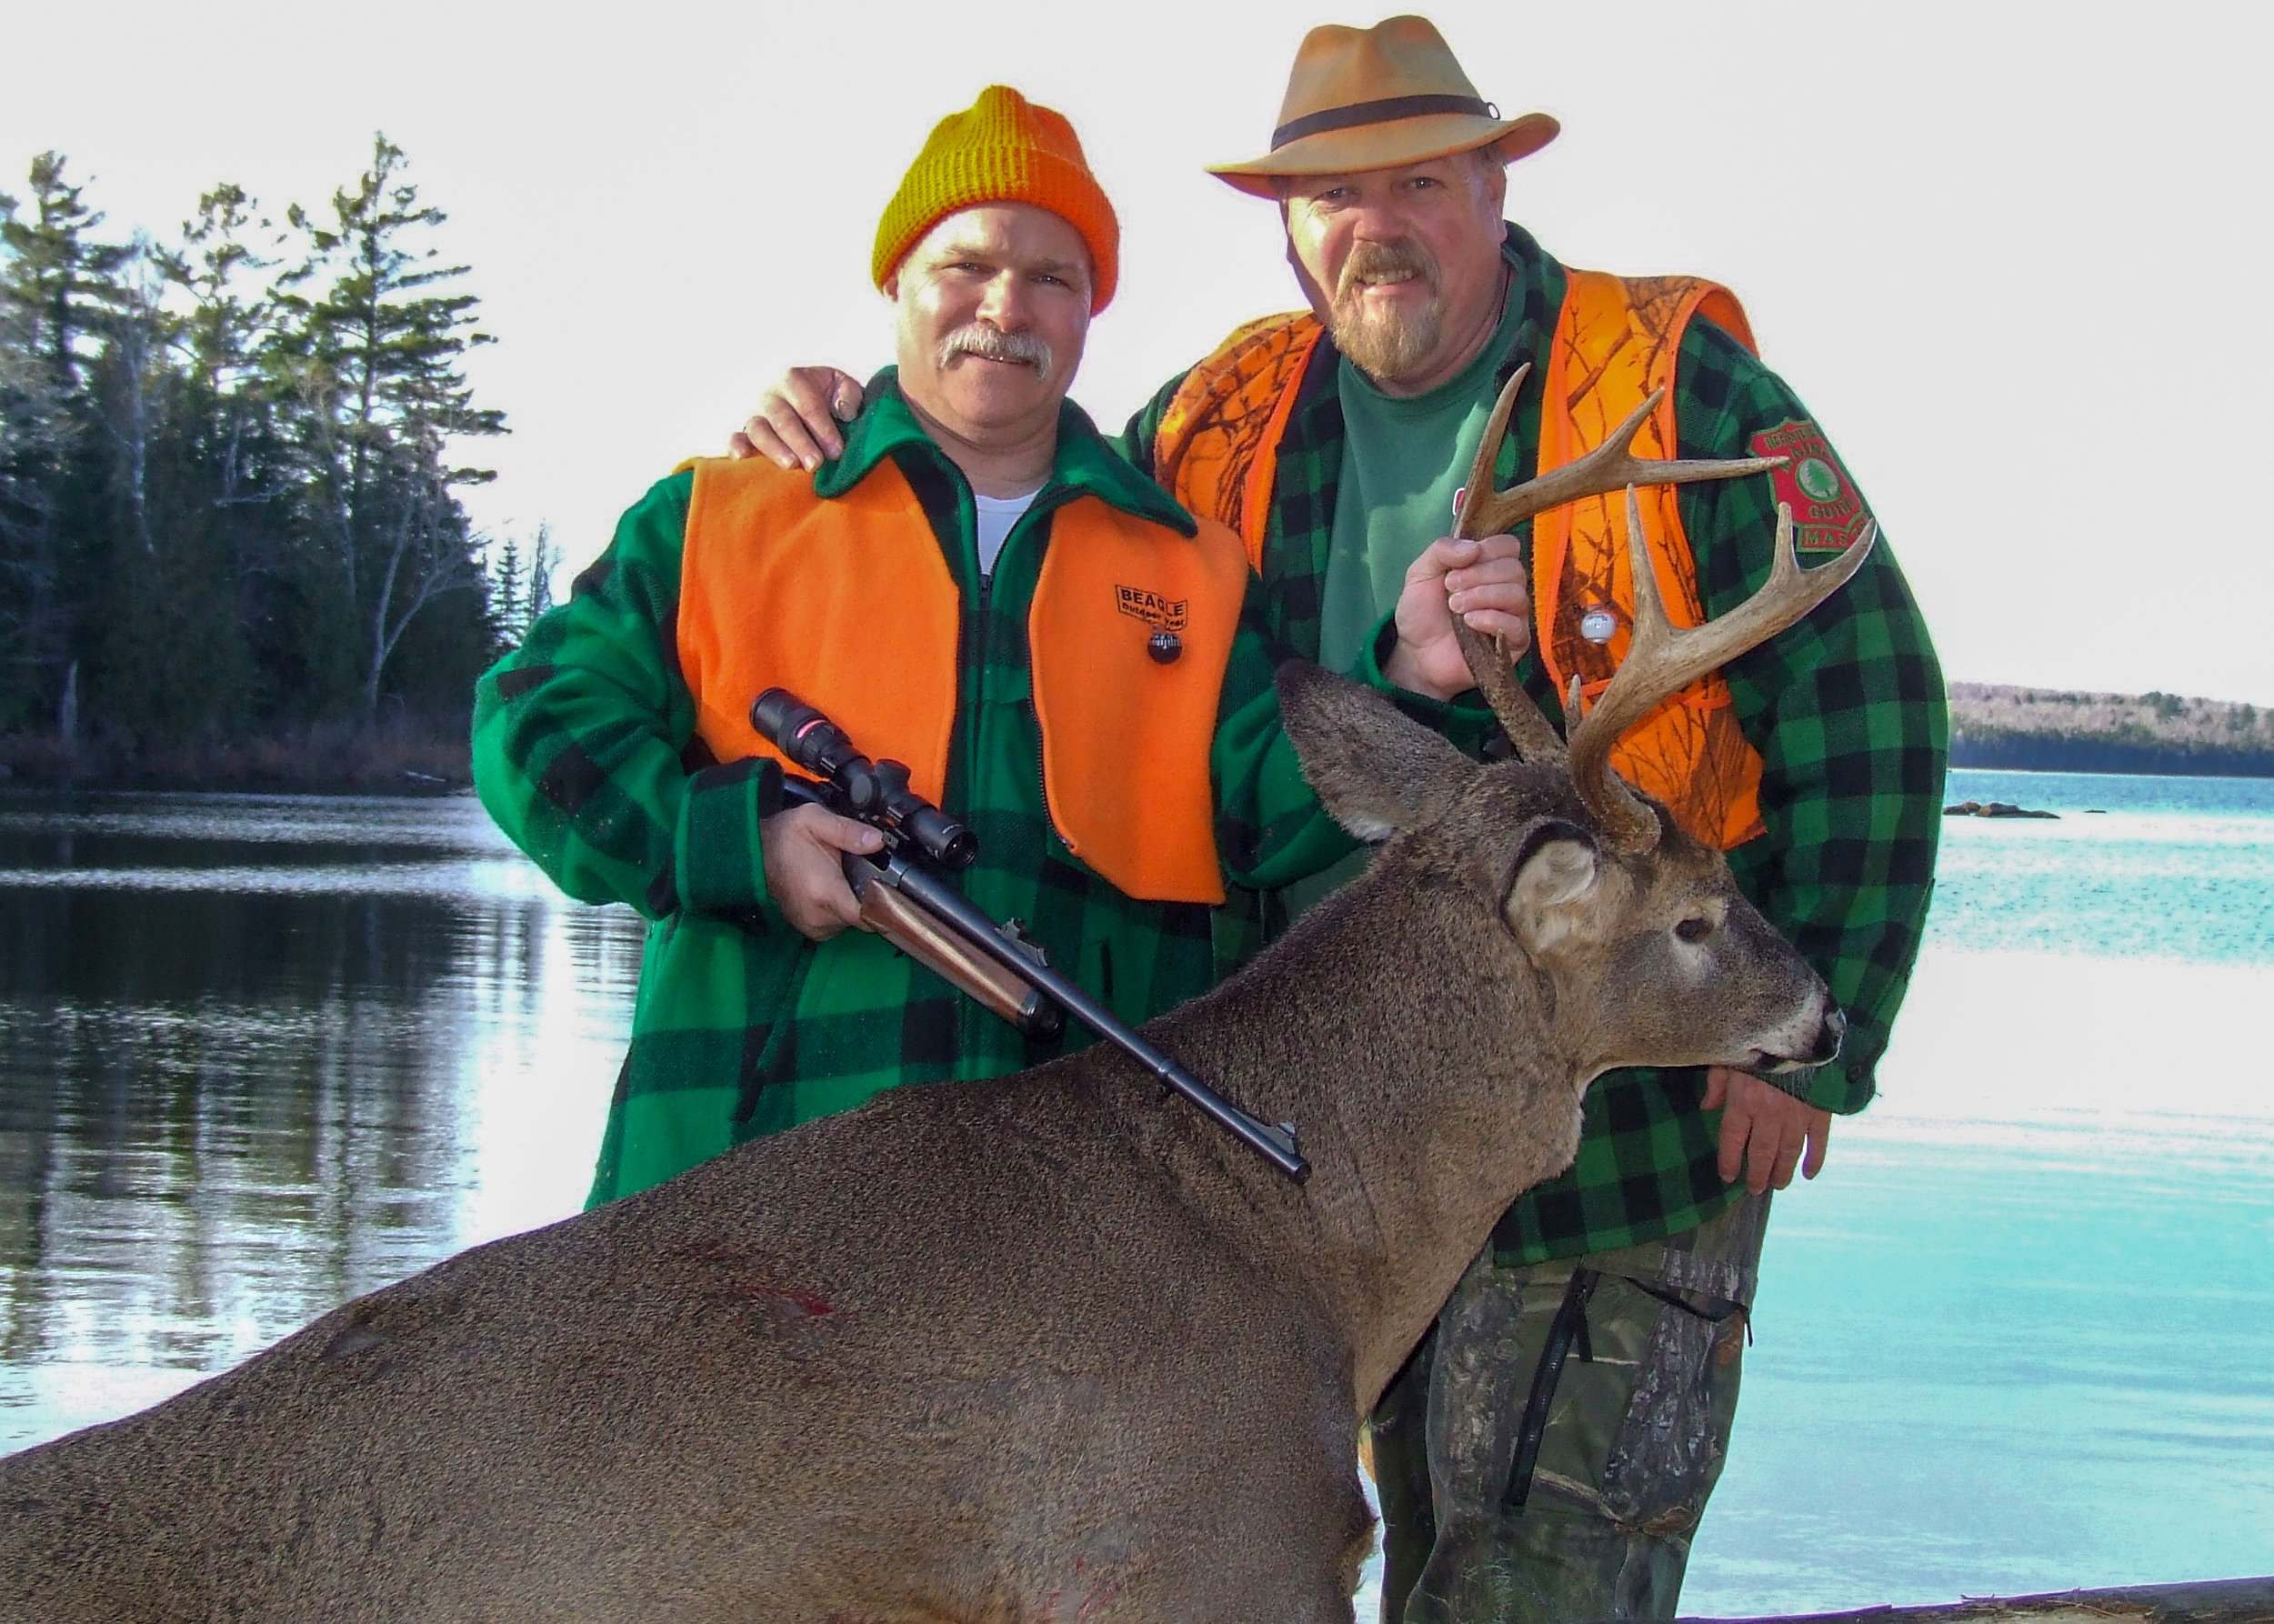 Trophy whitetail deer hunts in Maine